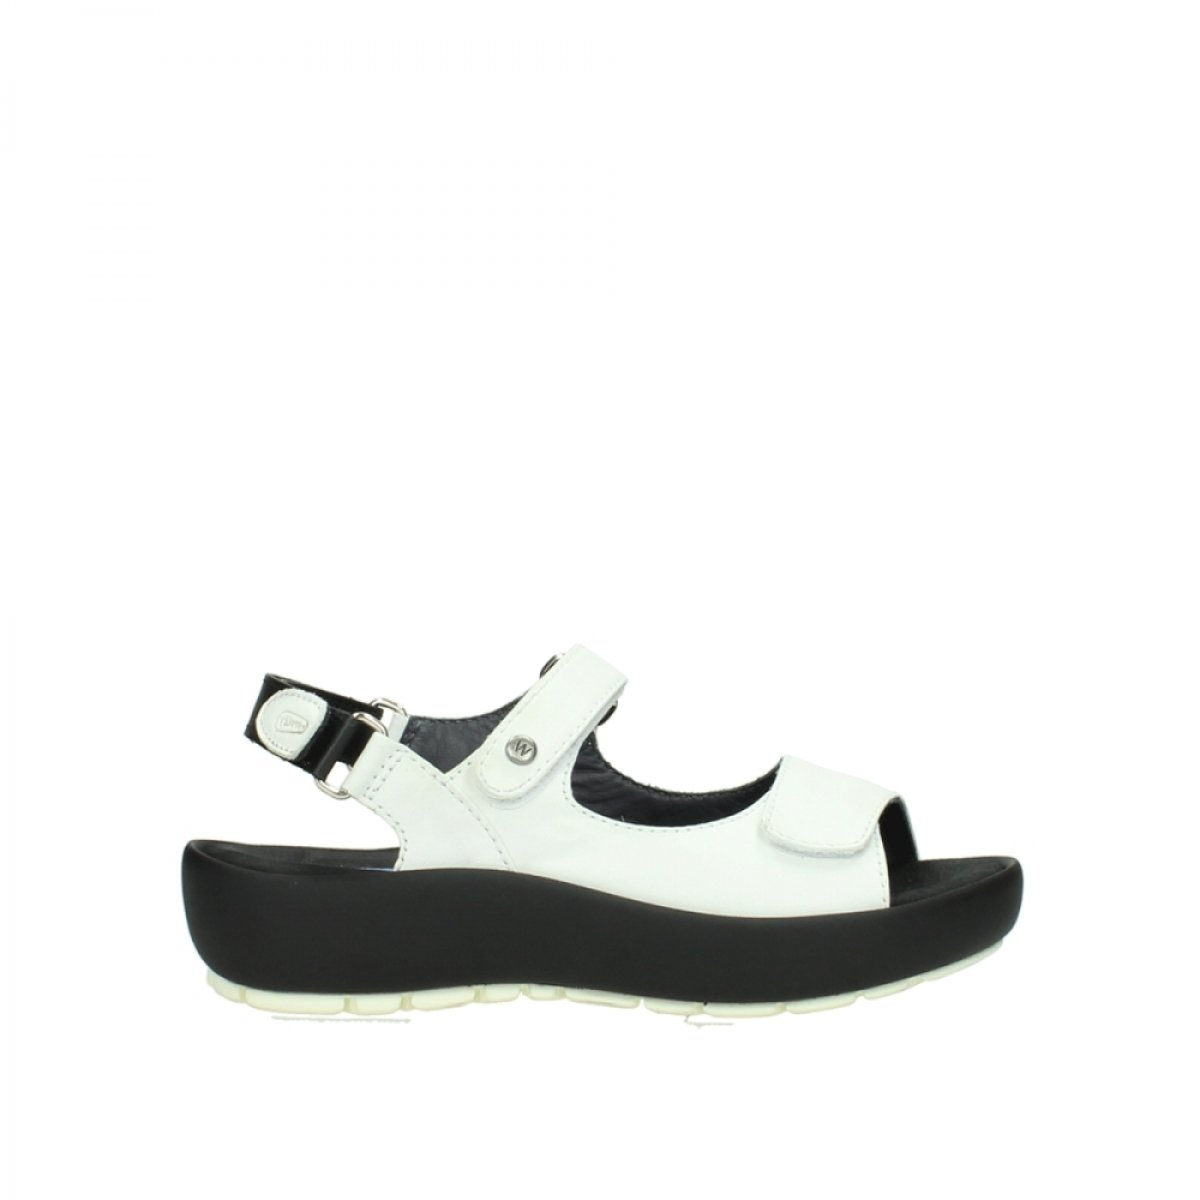 Wolky Comfort Rio B007OAN0O2 41 EU|20100 White Leather